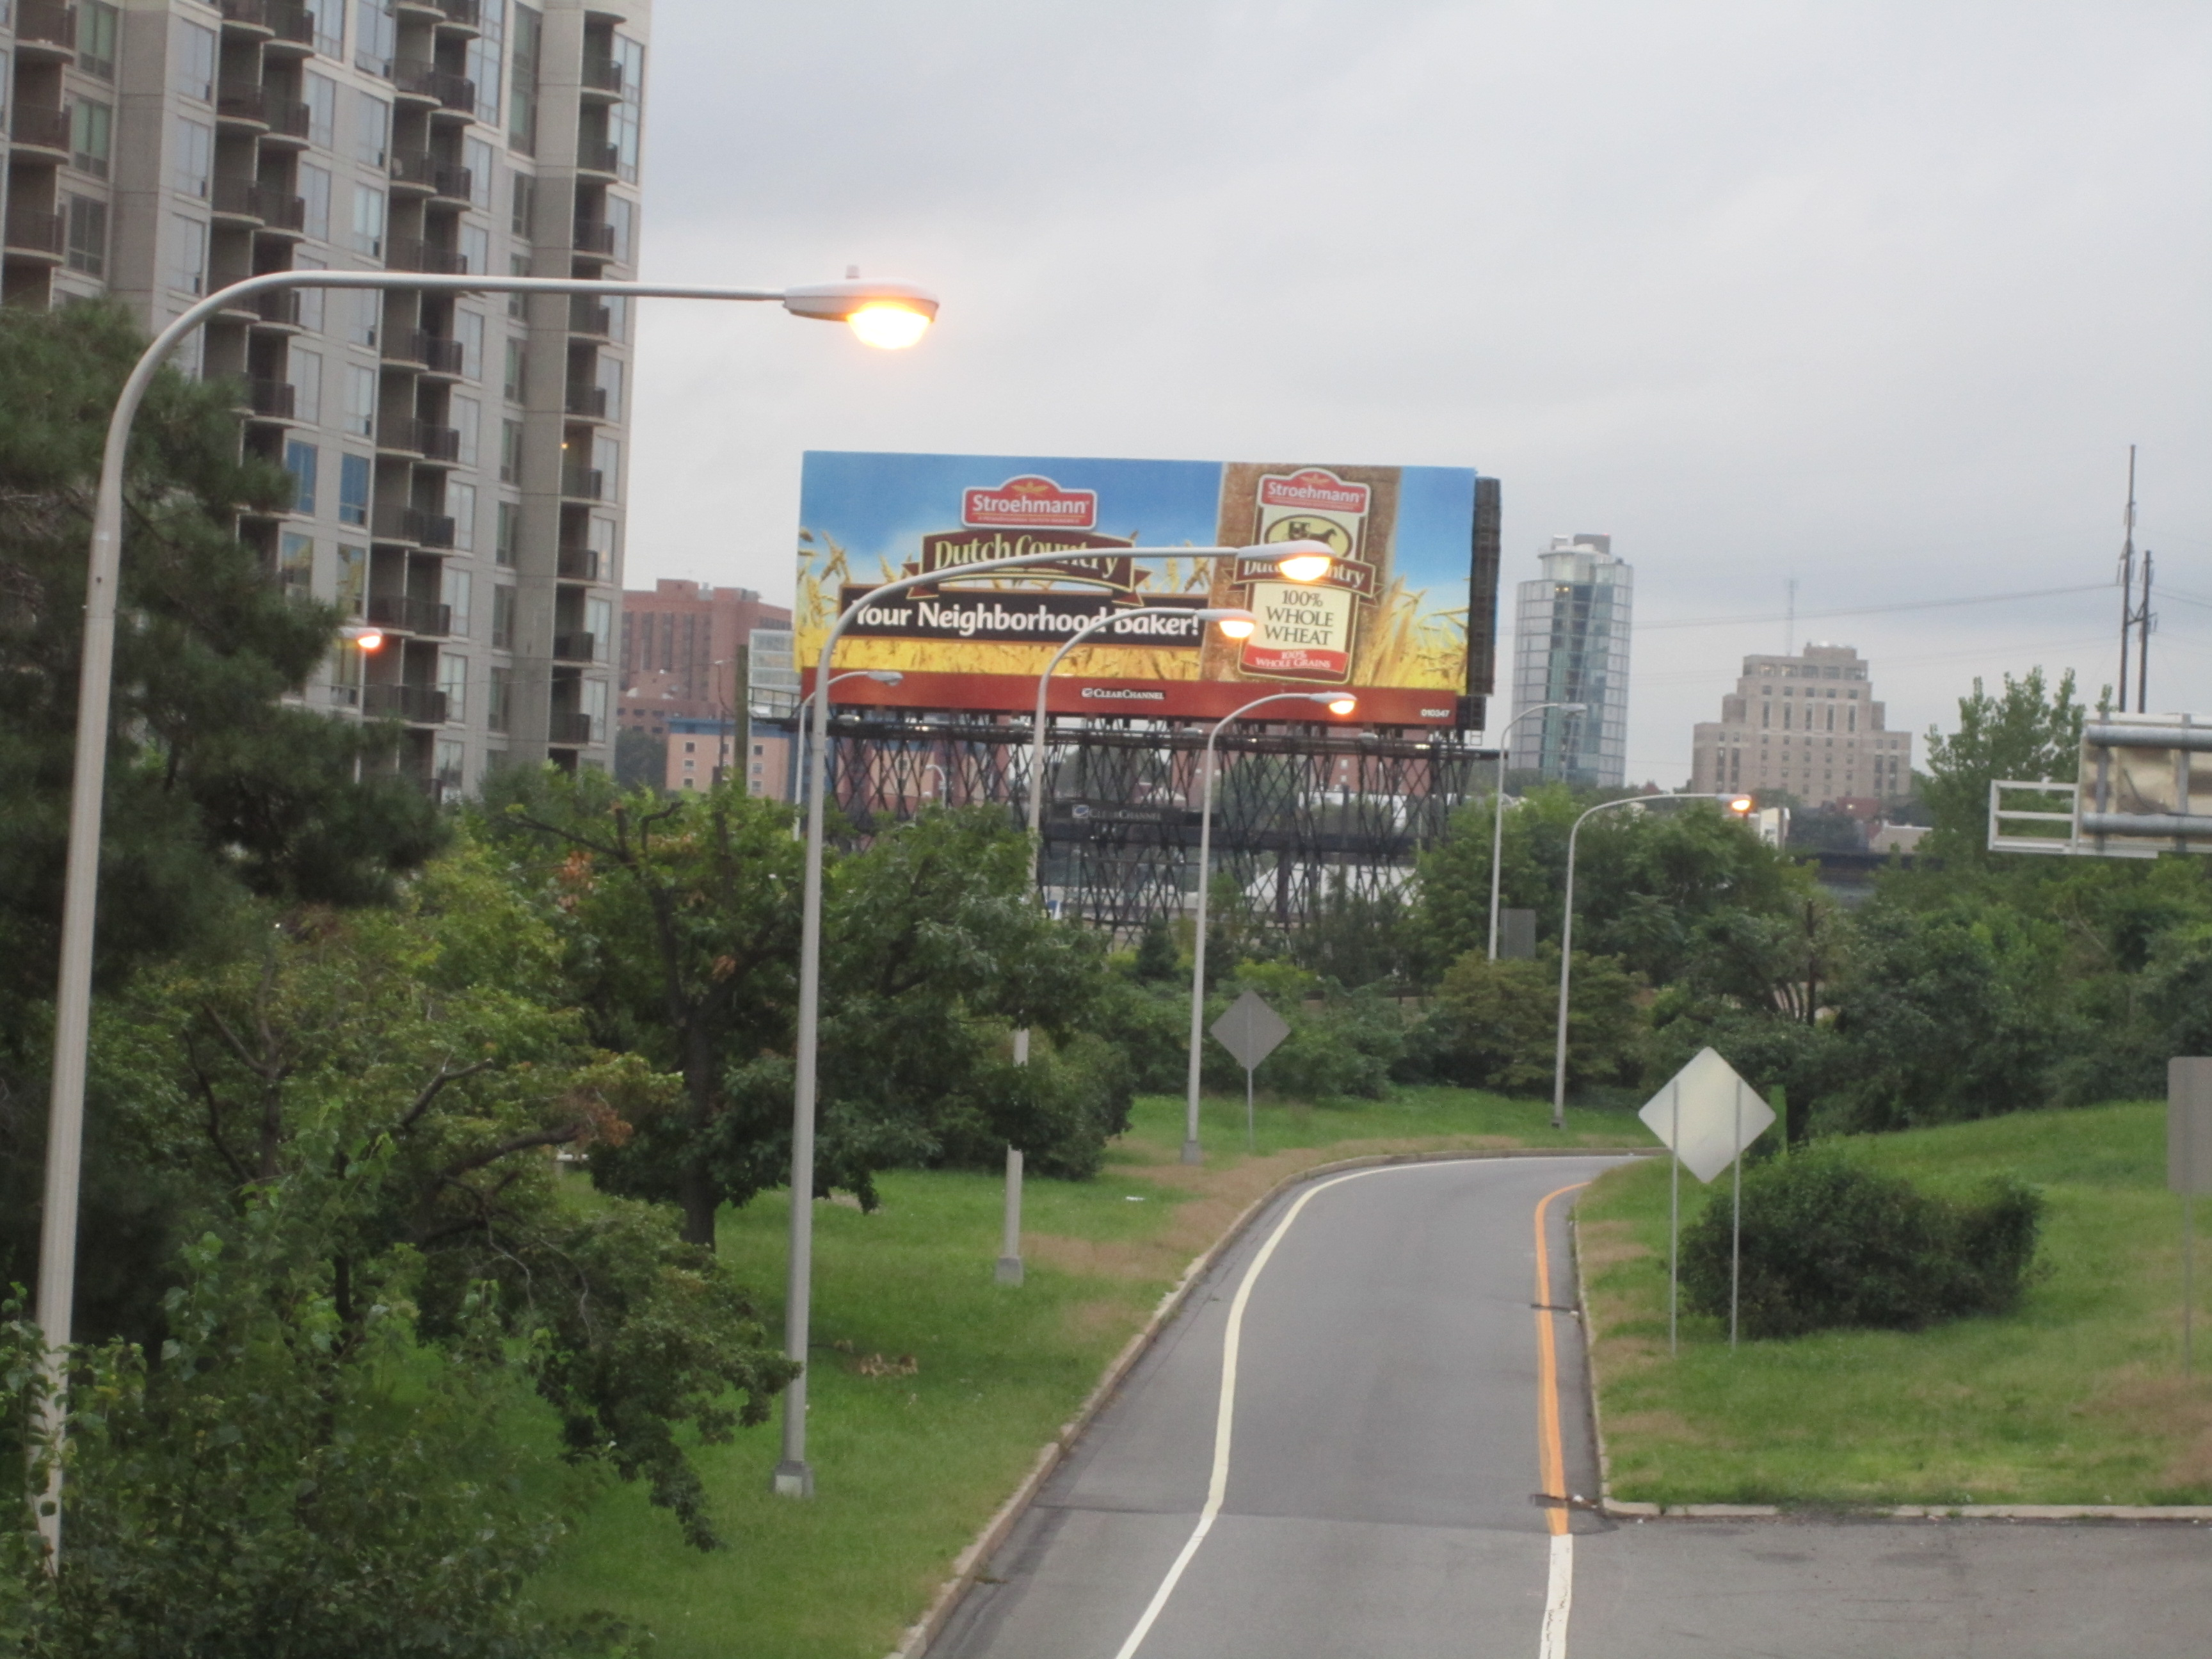 The newly cleared view of the billboard near 23rd and the Vine St. Expressway.